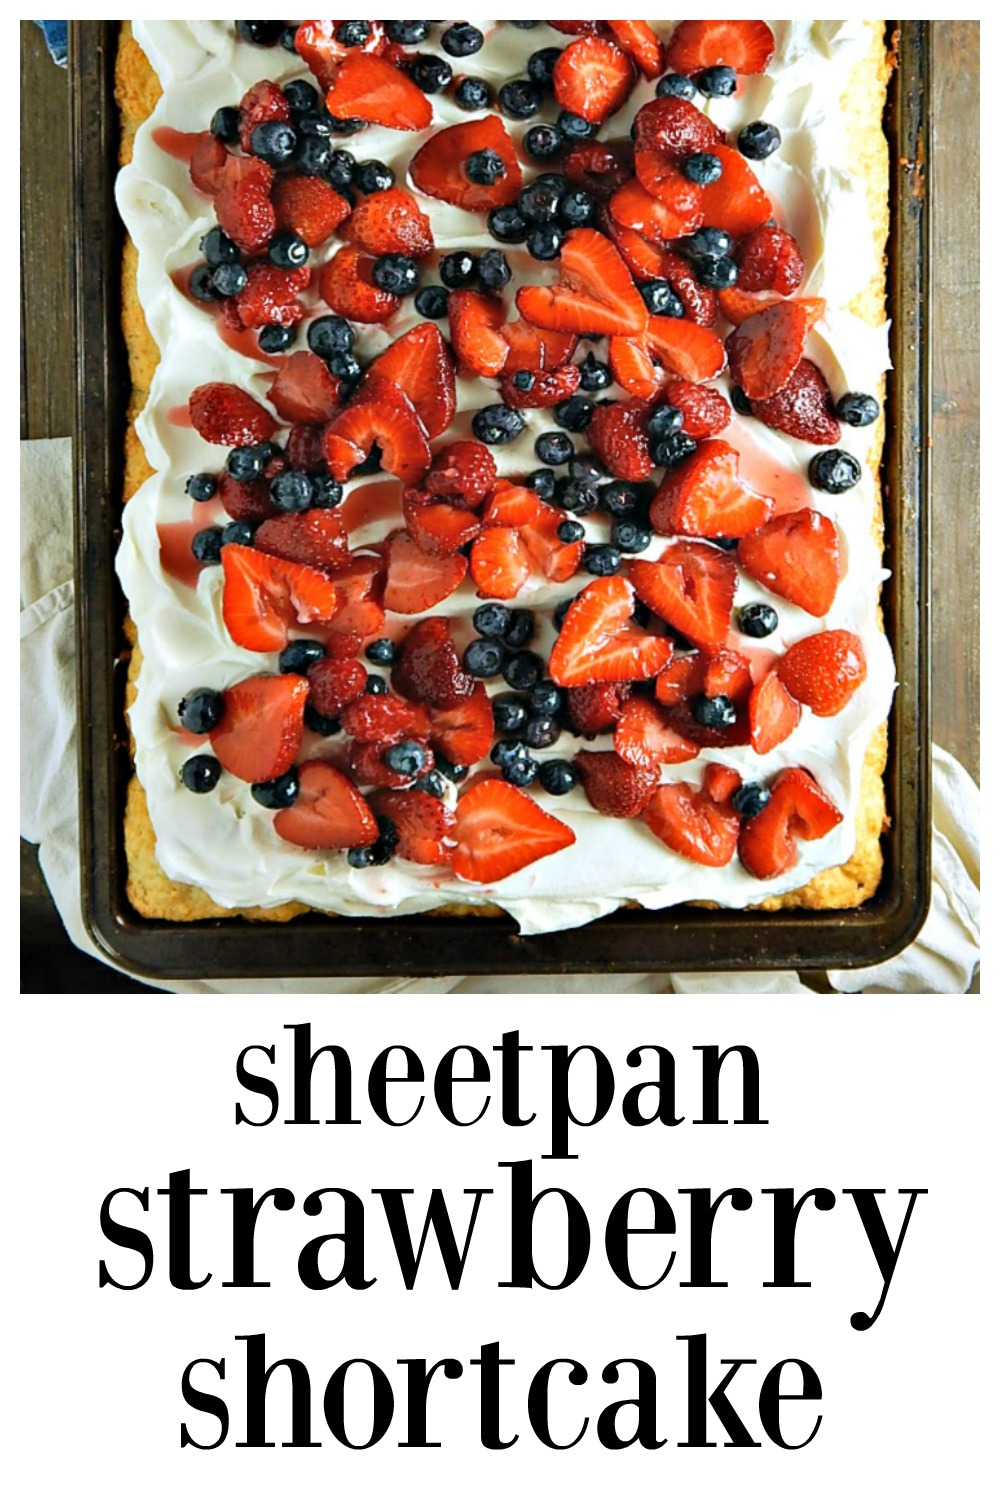 This is a Strawberry Shortcake for the Win! Sheetpan Strawberry Shortcake is great for a crowd. You'll be a hero at your next party, potluck or barbecue. Just don't tell anyone how easy it was! #SheetcakeDesserts #StrawberryShortcake #PotluckDesserts #SummerHolidays  #SheetcakeStrawberryShortcake